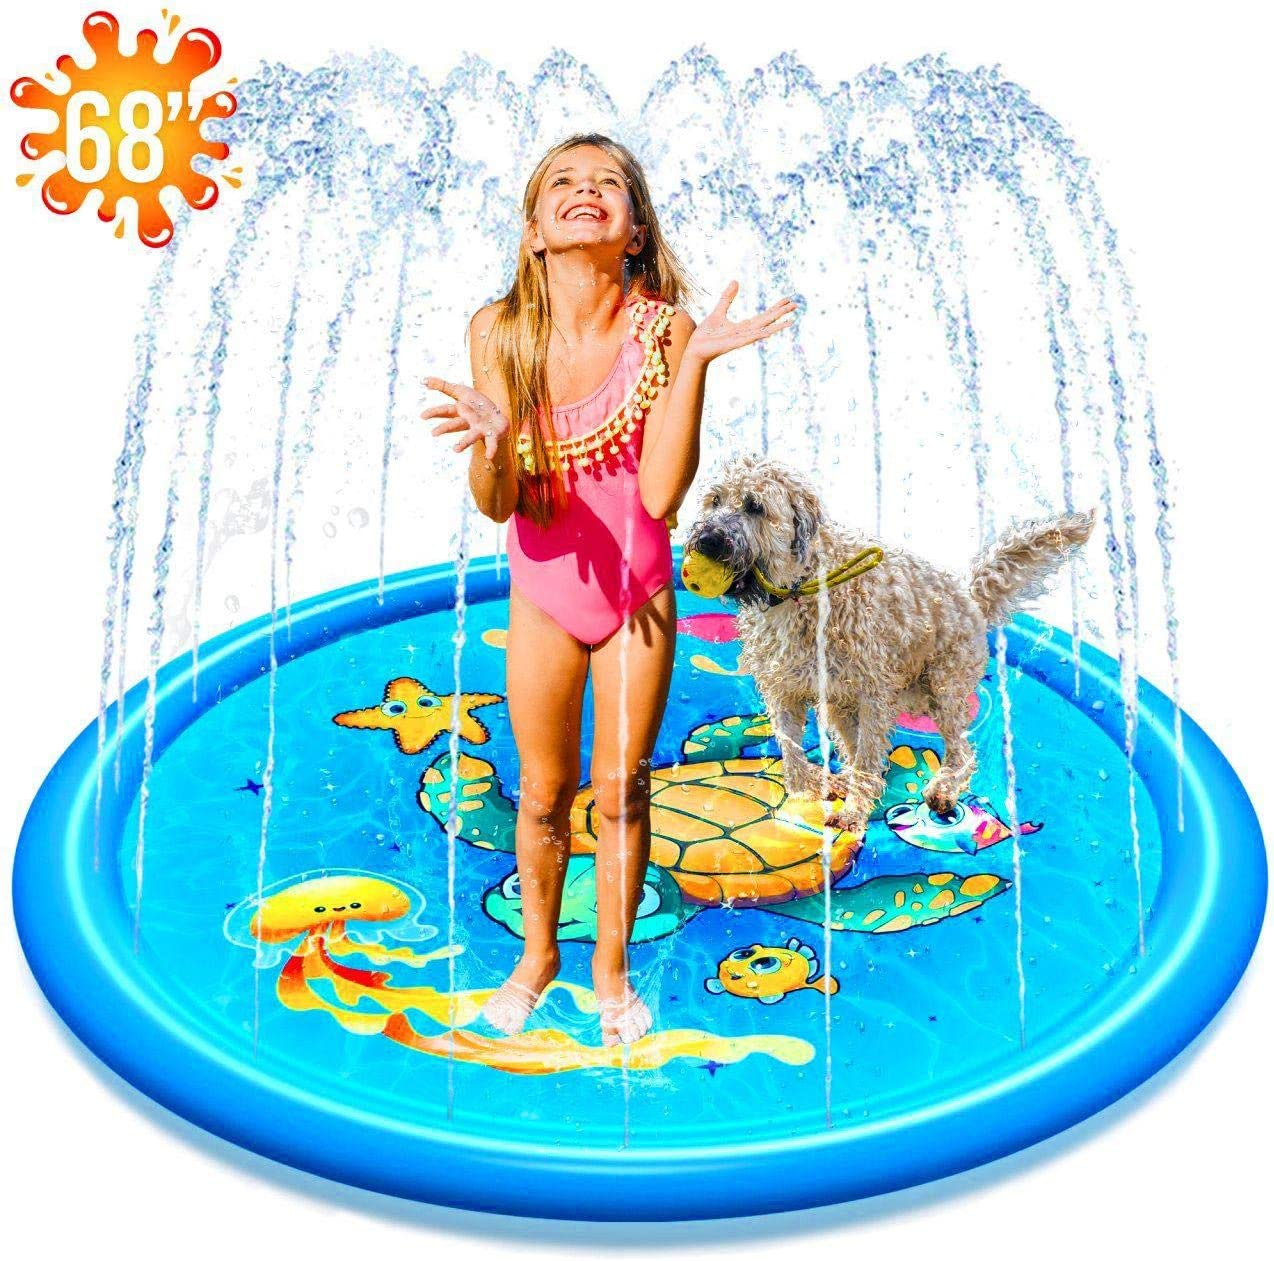 "(68"") Inflatable Splash Sprinkler Pad for Kids Toddlers Dogs, Kiddie Baby Pool, Outdoor Water Mat Toys - Baby Infant Wading Swimming Pool - Fun Backyard Fountain Play Mat for 1 -12 Year Old Girls Boys 71J46pH2hwL"